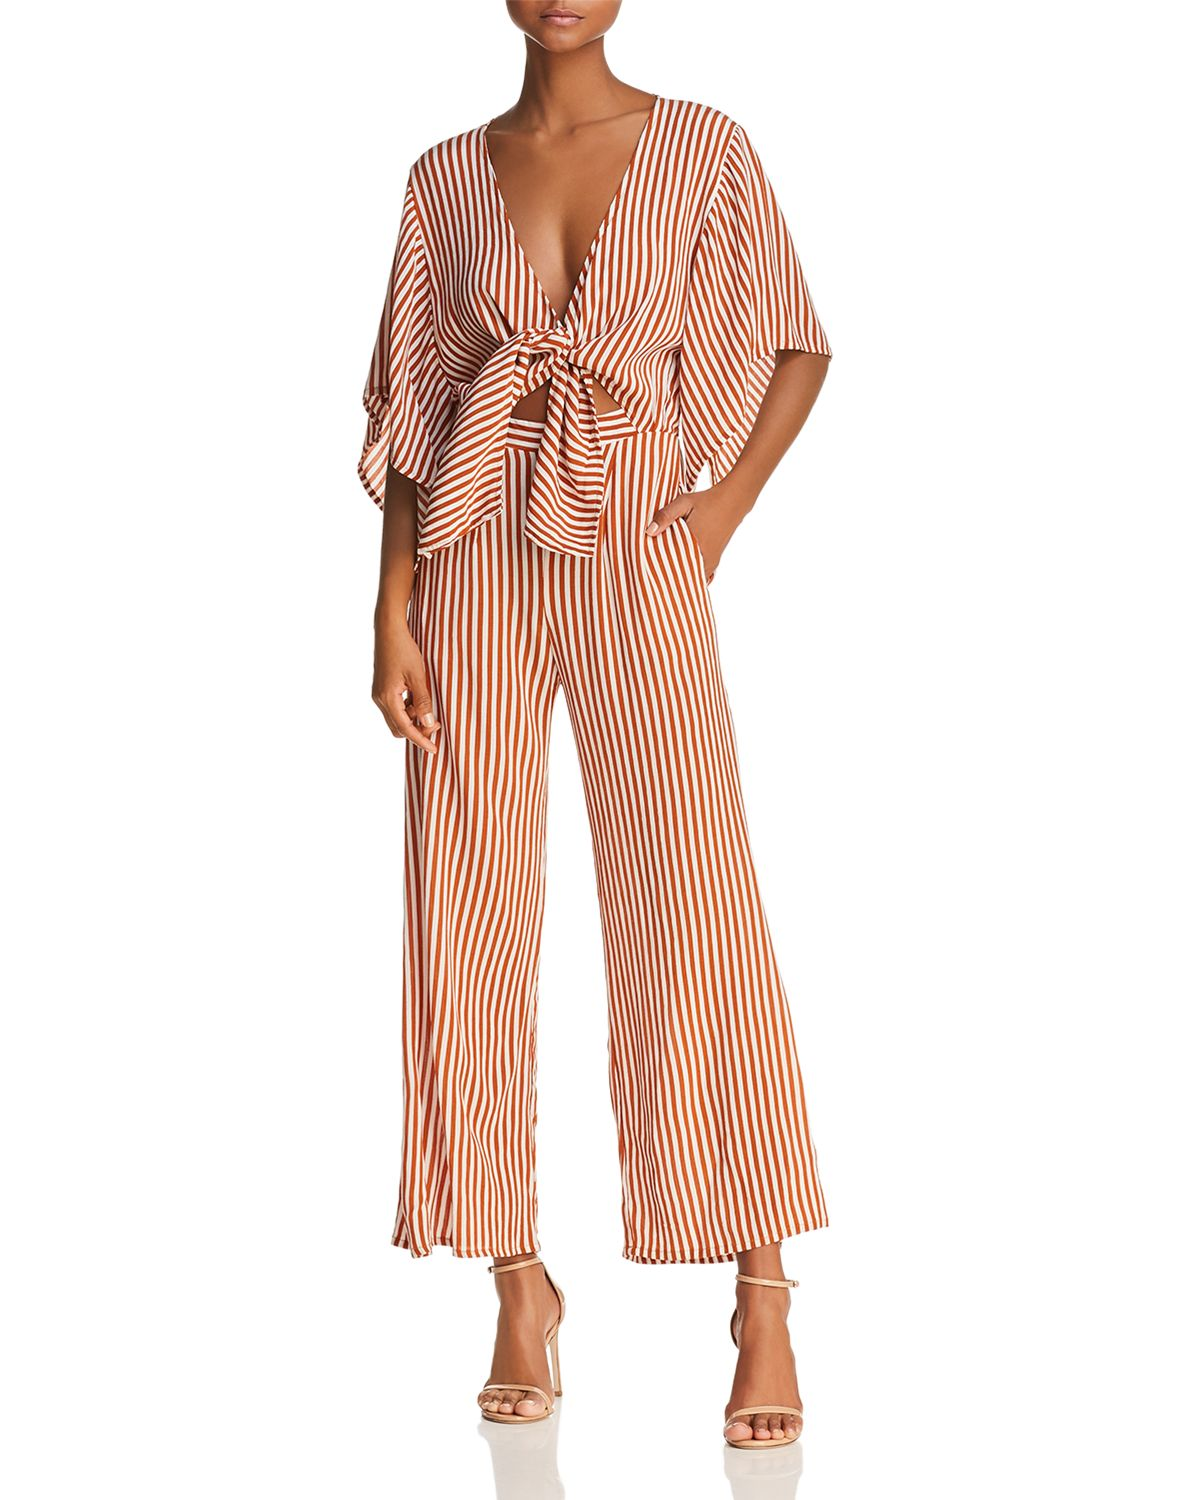 Tilos Striped Jumpsuit by Faithfull The Brand